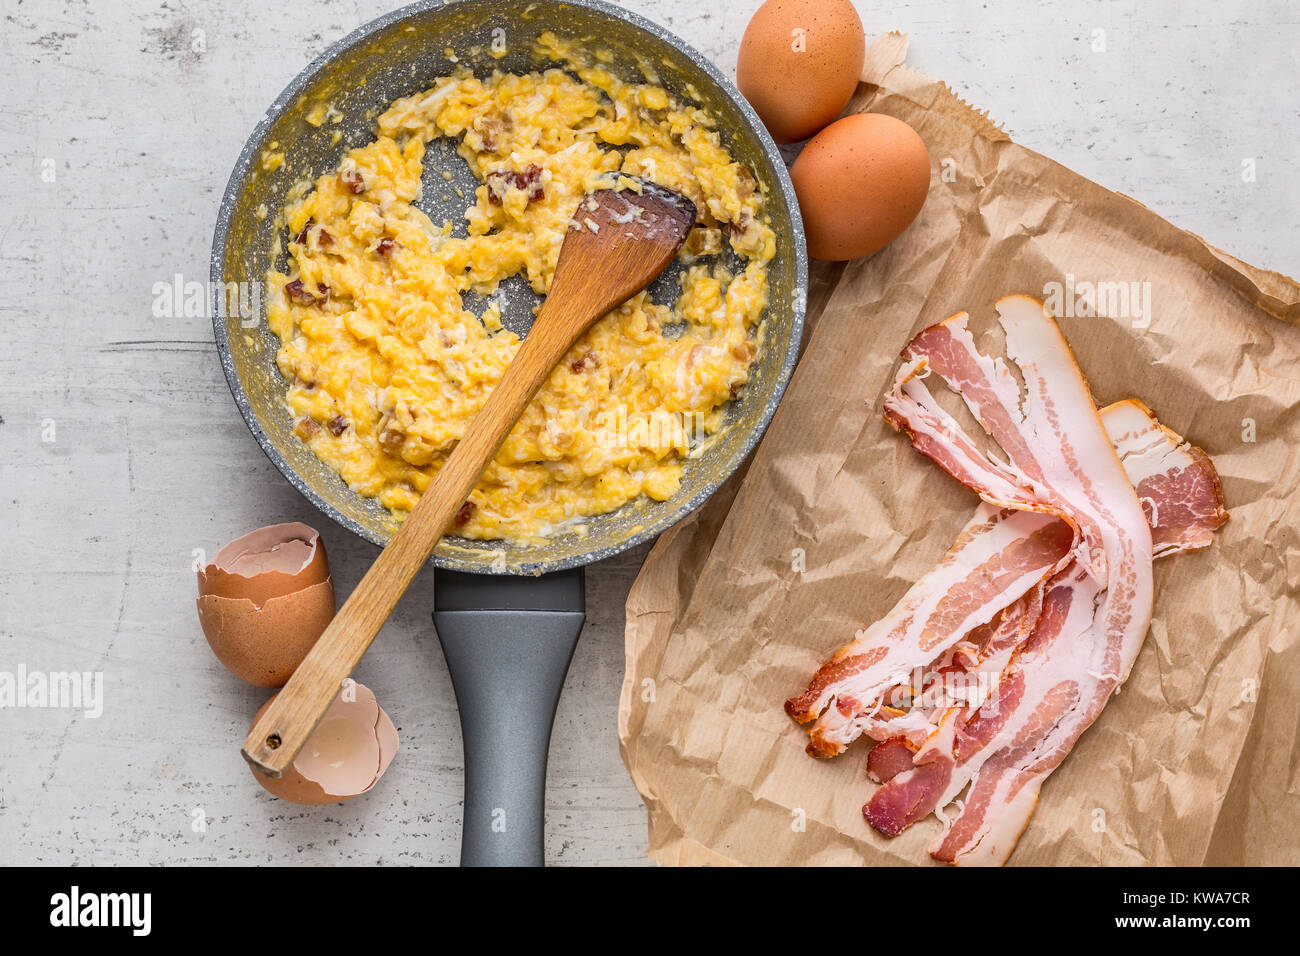 Ham and eggs. Scrambled eggs with bacon in ceramic pan. - Stock Image